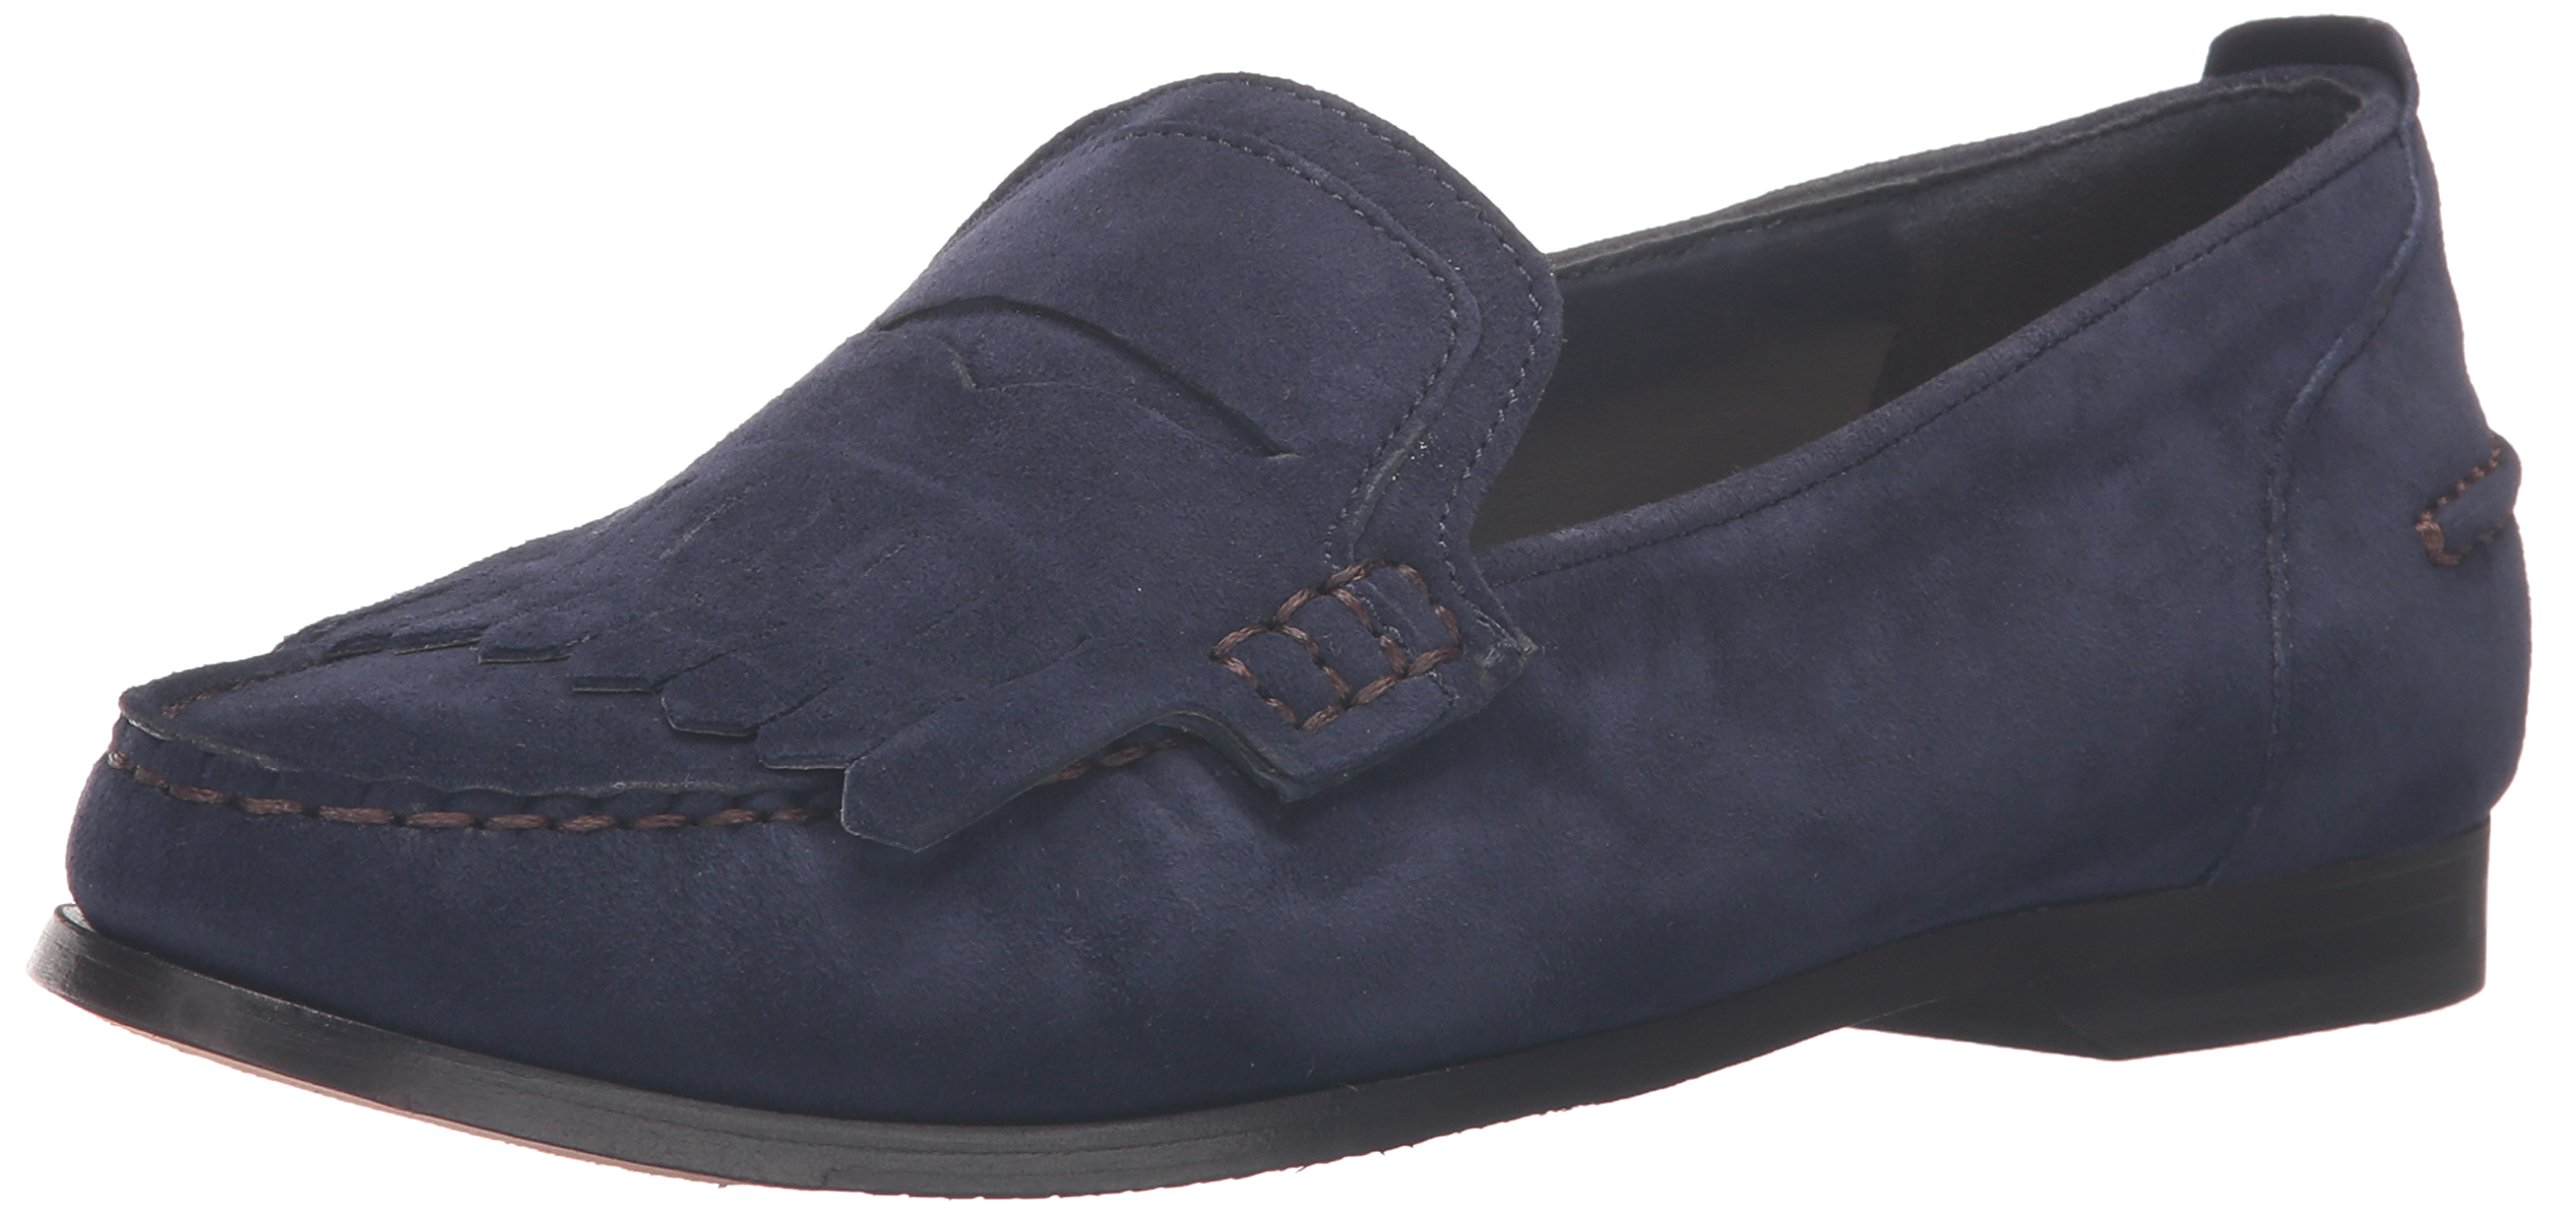 Cole Haan Women's Pinch Grnd Pny Kltie Penny Loafer, Marine Blue Sue, 9 B US